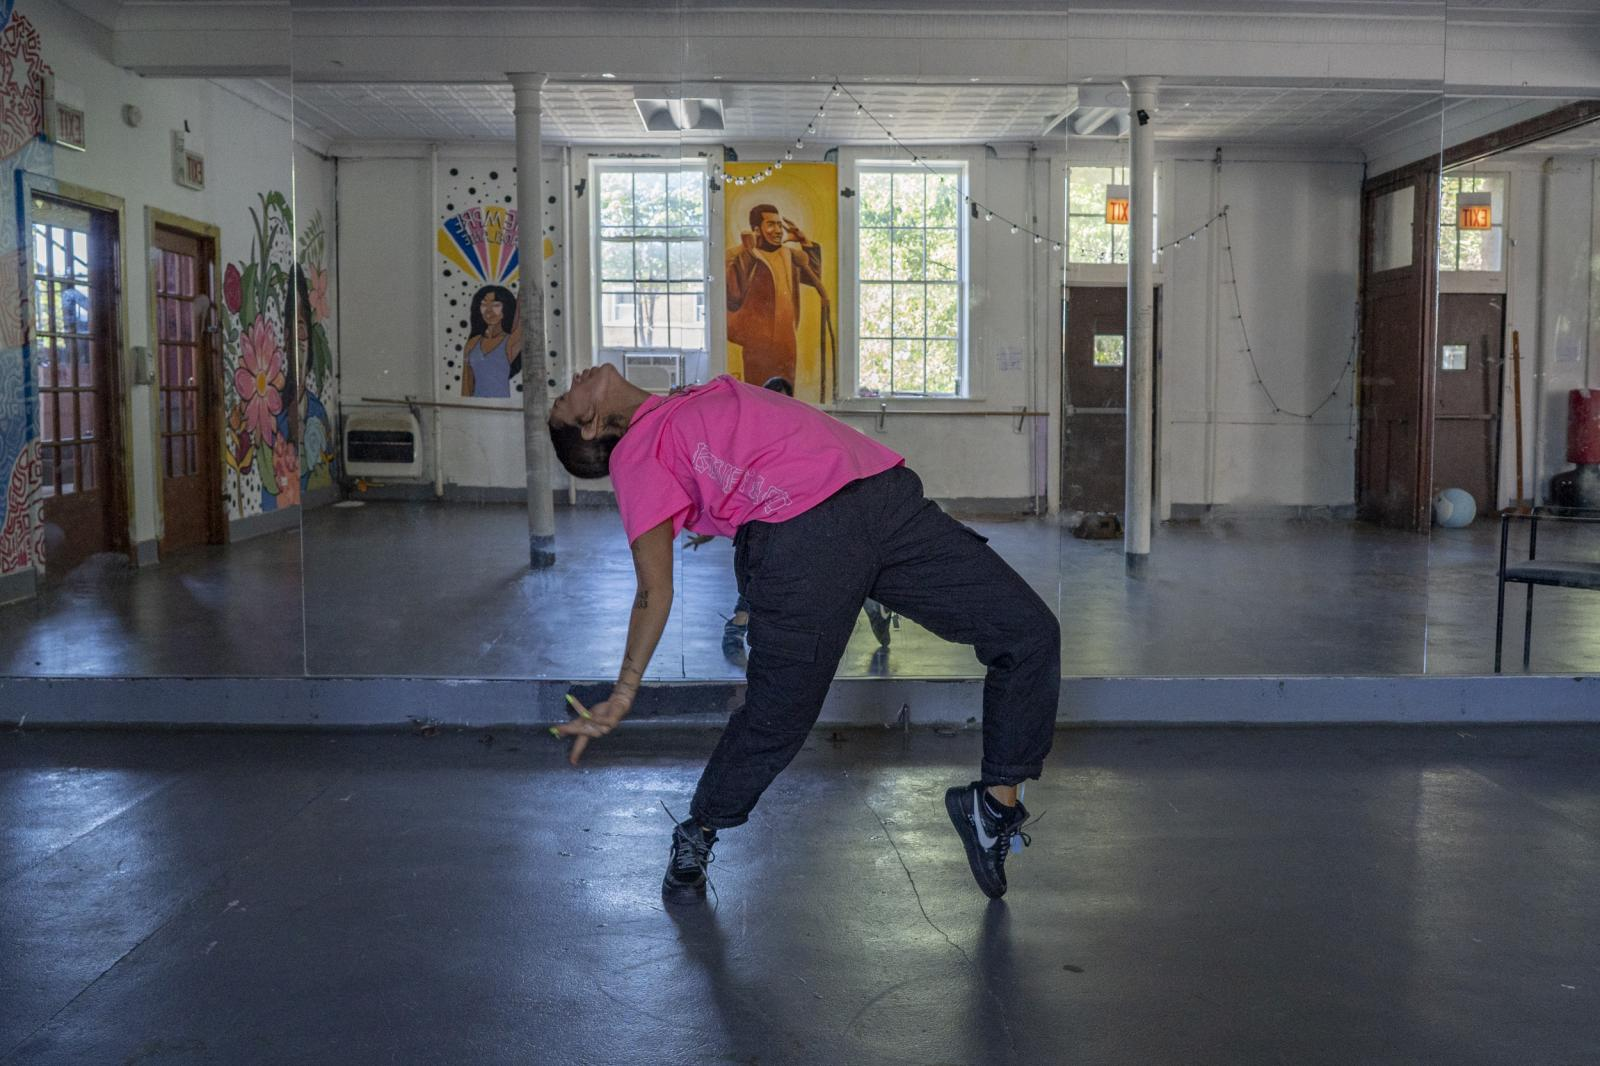 Tanya Lozano showcases her choreography at the Healthy Hood fitness studio in Chicago on August 9, 2019. Lozano and her niece Daysha Del Valle work together to run the studio out of her mother, activist Emma Lozano's church.